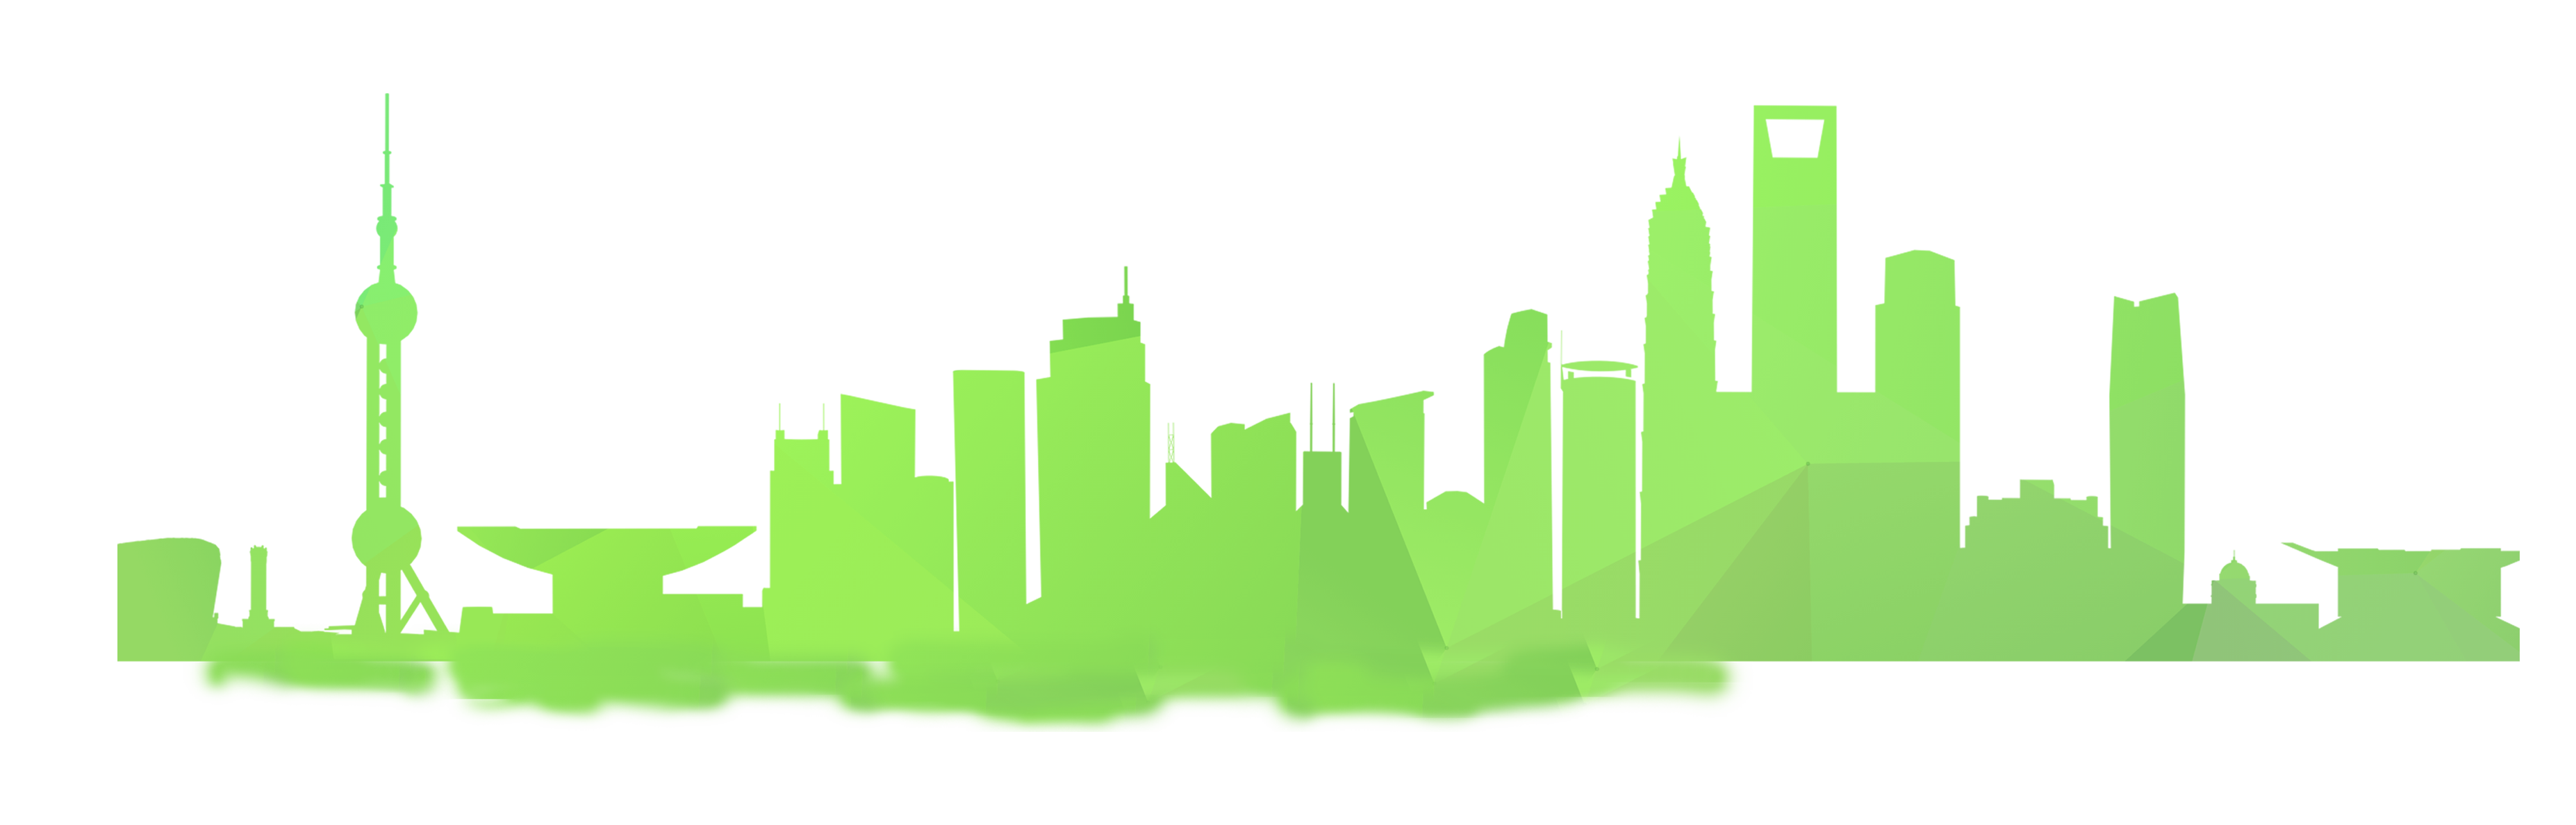 Person clipart city. New york skyline at